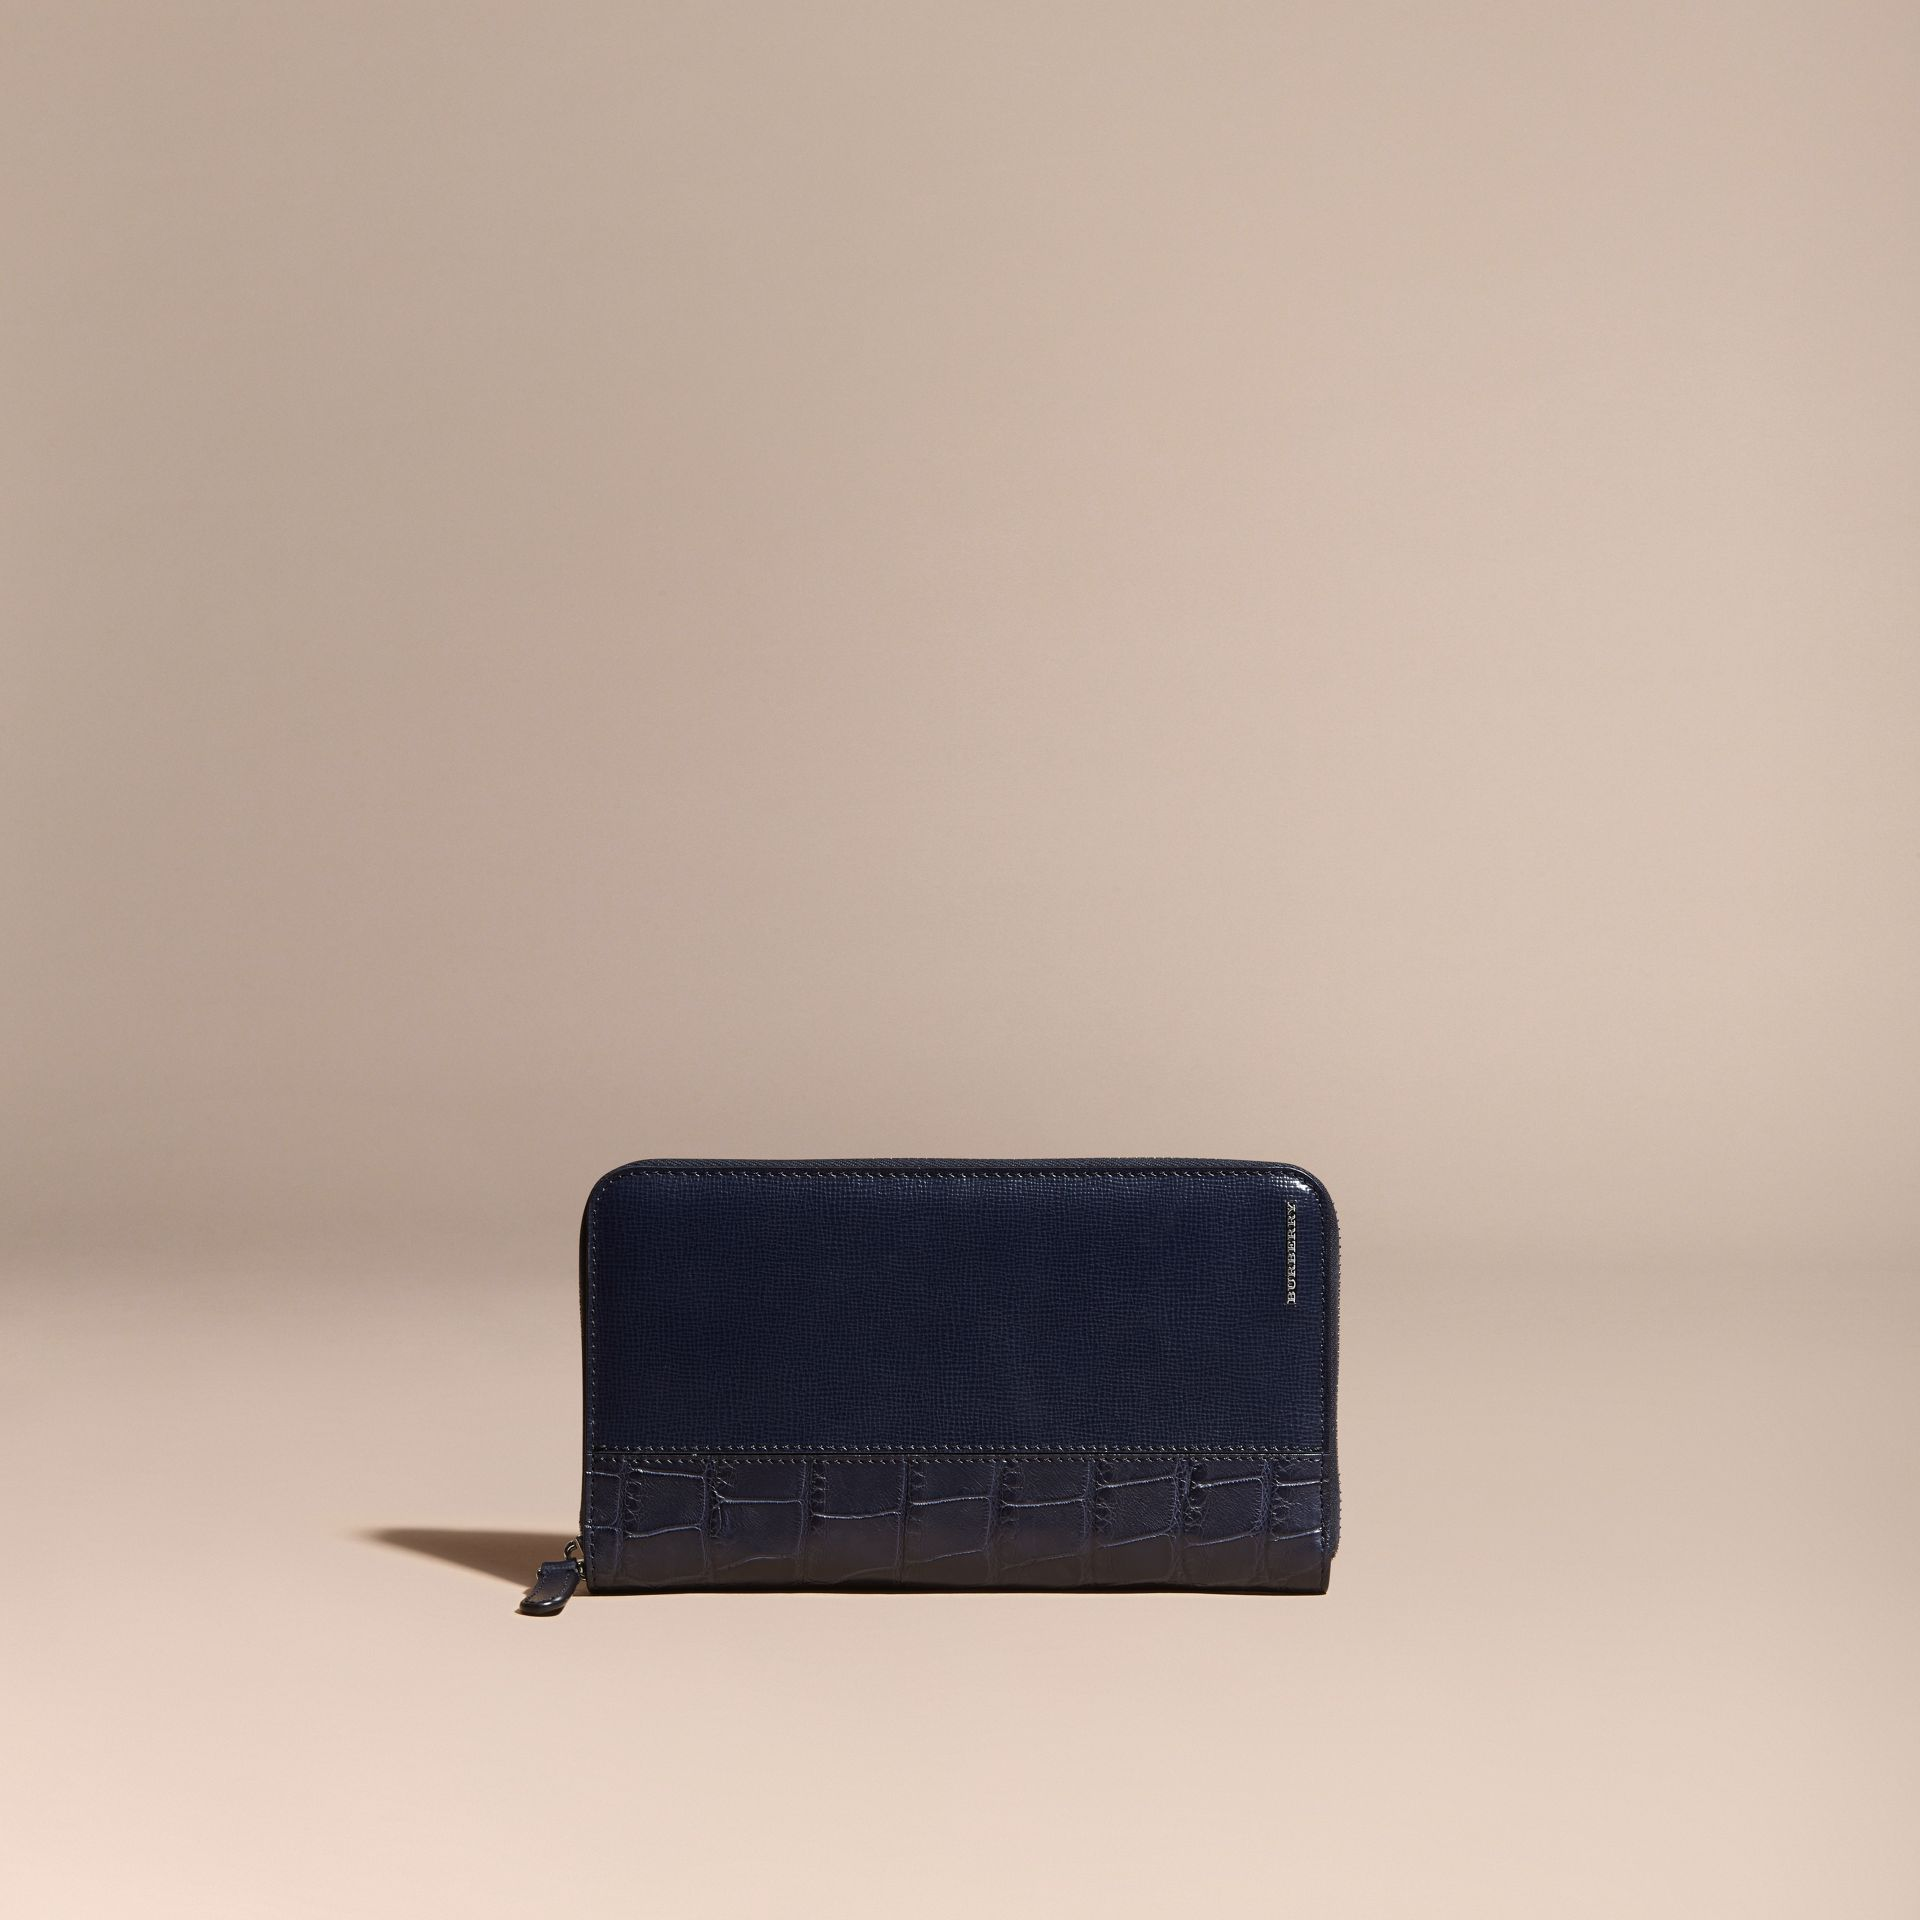 London Leather and Alligator Ziparound Wallet in Dark Navy - gallery image 6